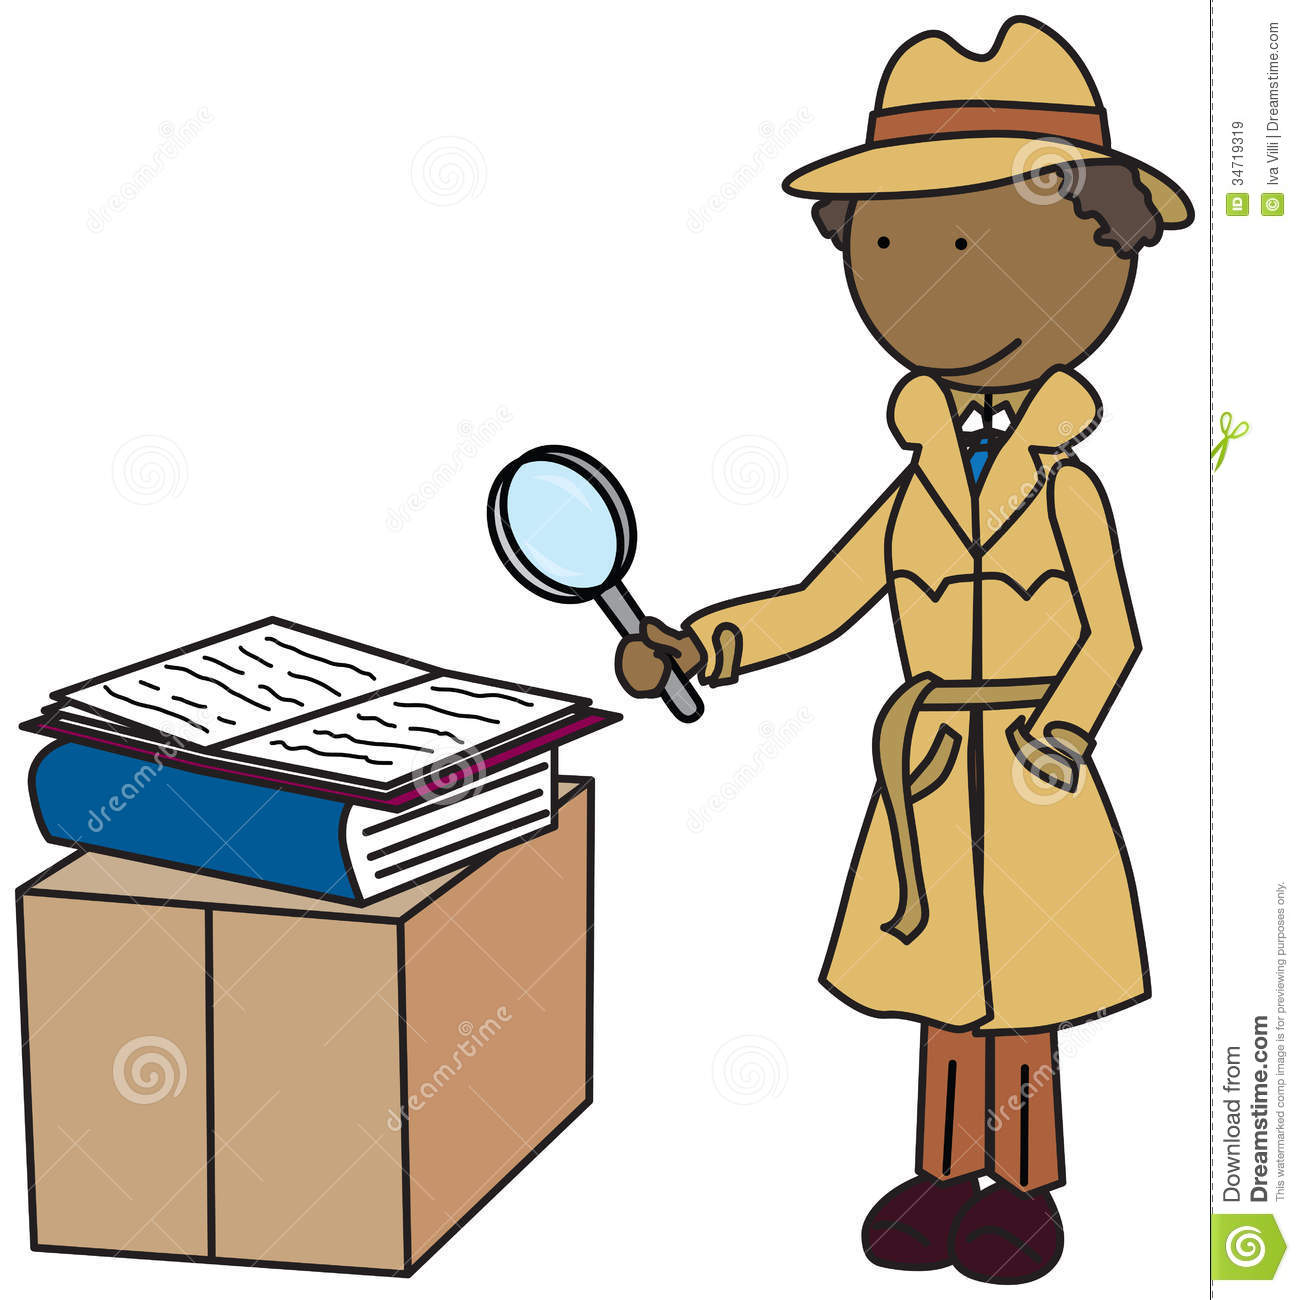 clipart magnifying glass detective - photo #20